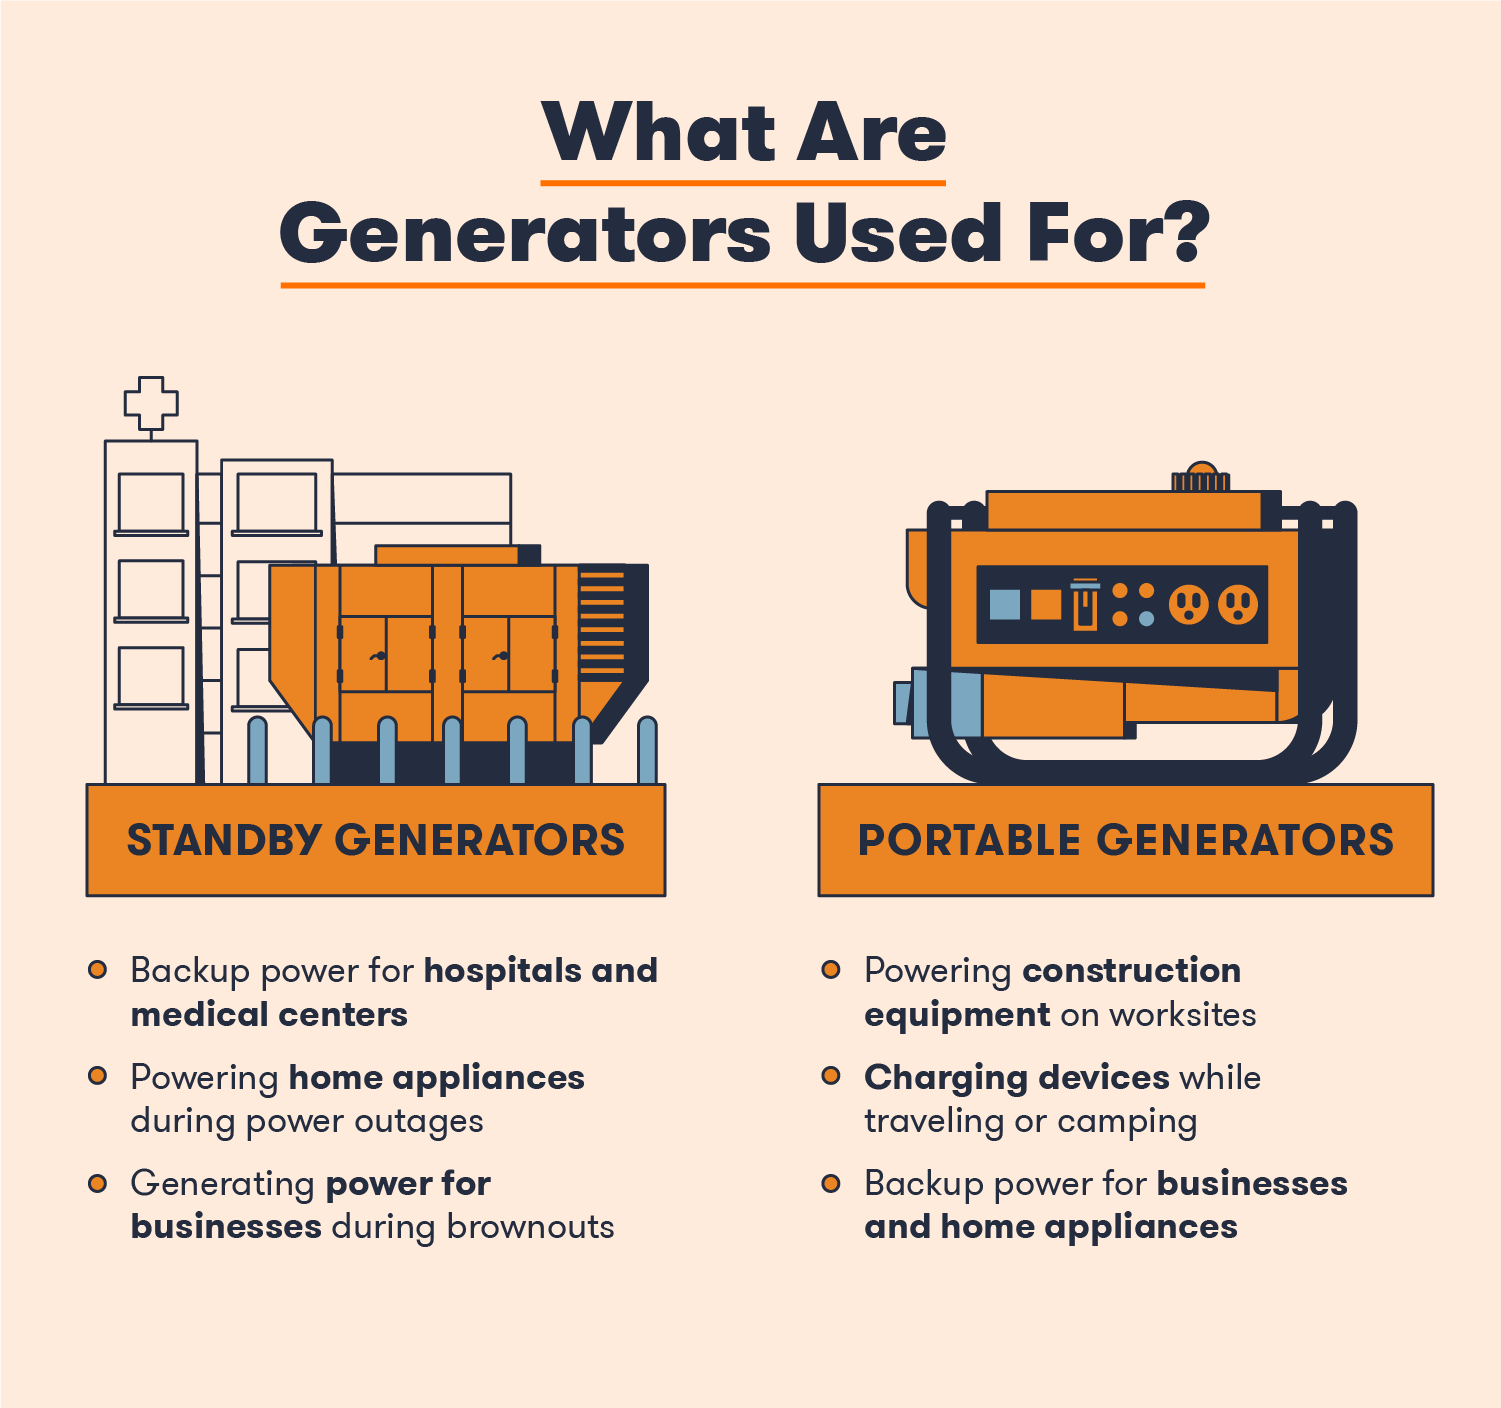 What Are Generators Used For